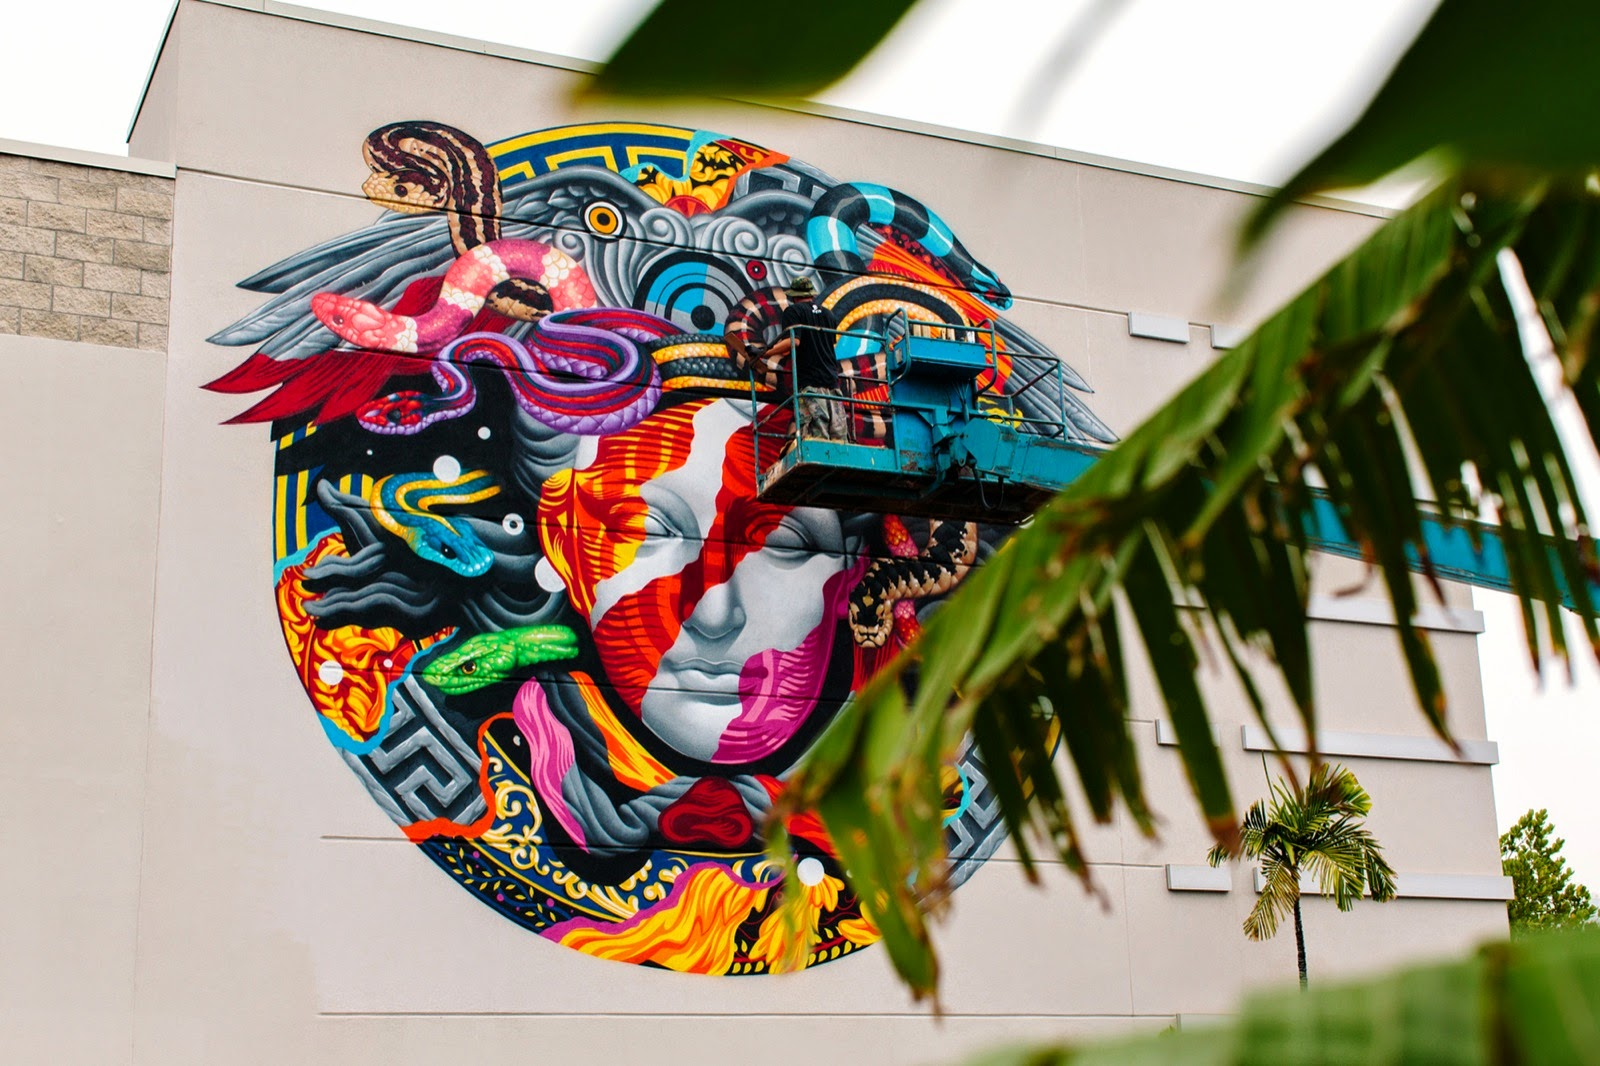 Our friend Tristan Eaton recently stopped by the beautiful island of Oahu to paint a new mural for Versace and POW! WOW! Hawaii on the streets of Honolulu.